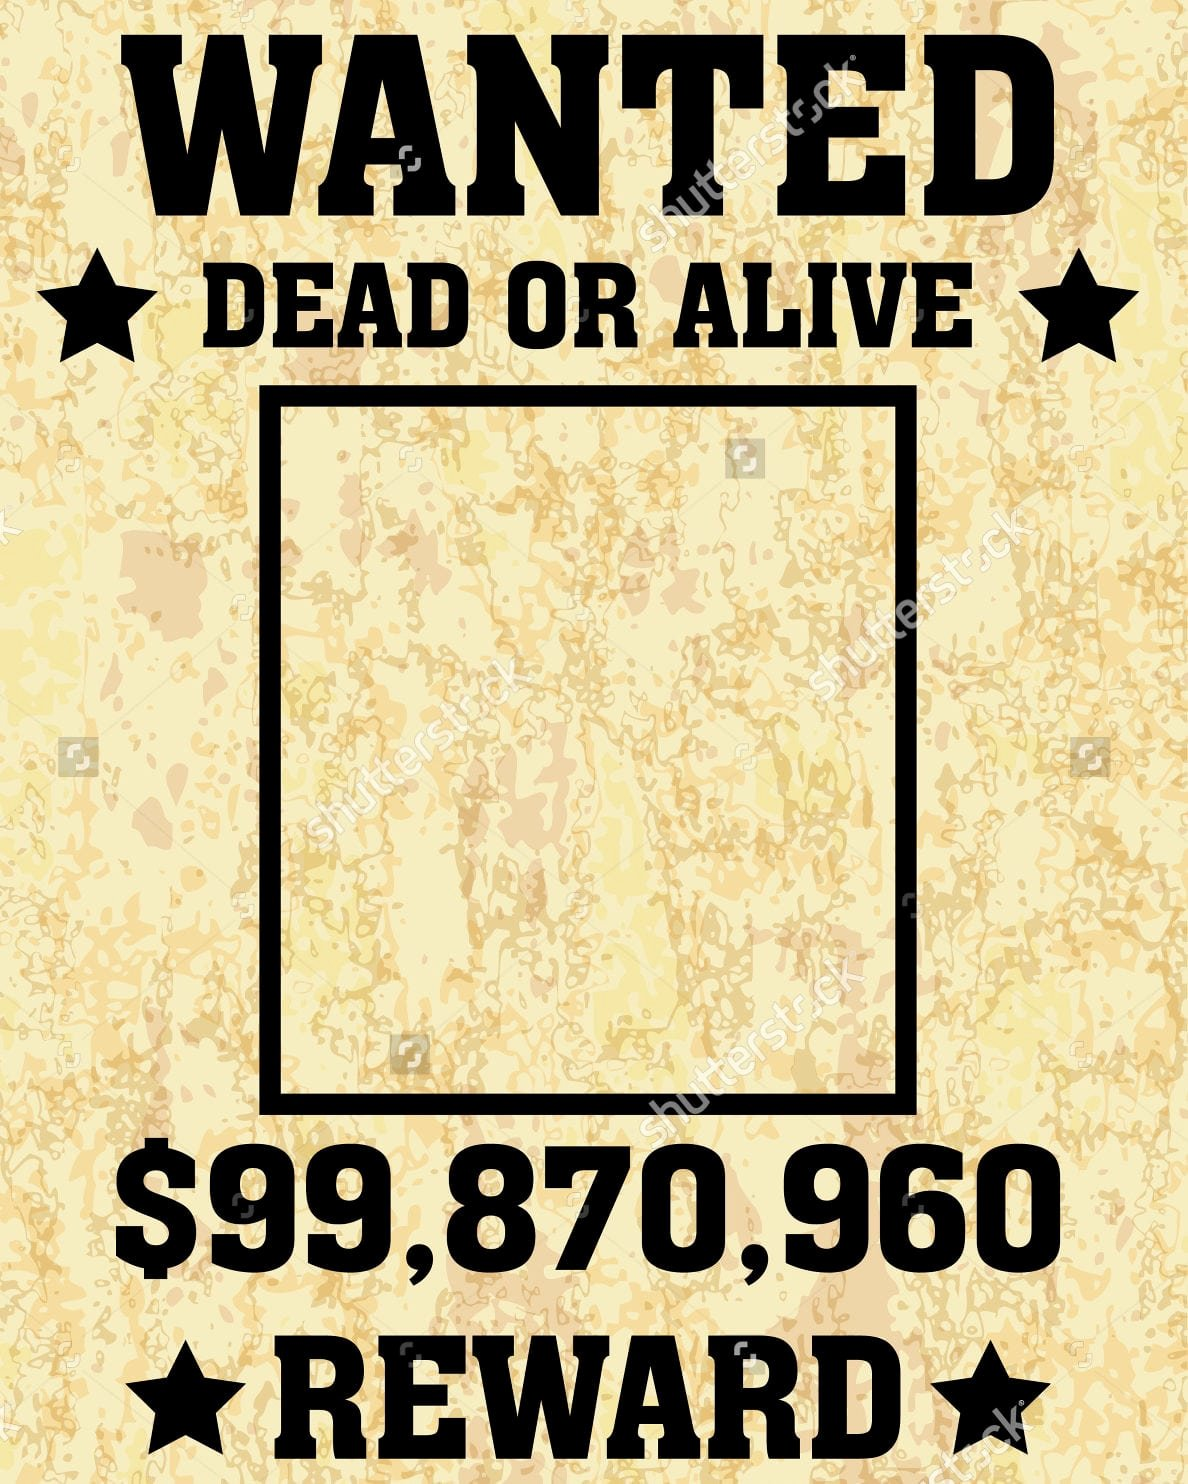 Wanted Poster Template Microsoft Word Elegant 6 Wanted Poster Templates Word Excel Templates